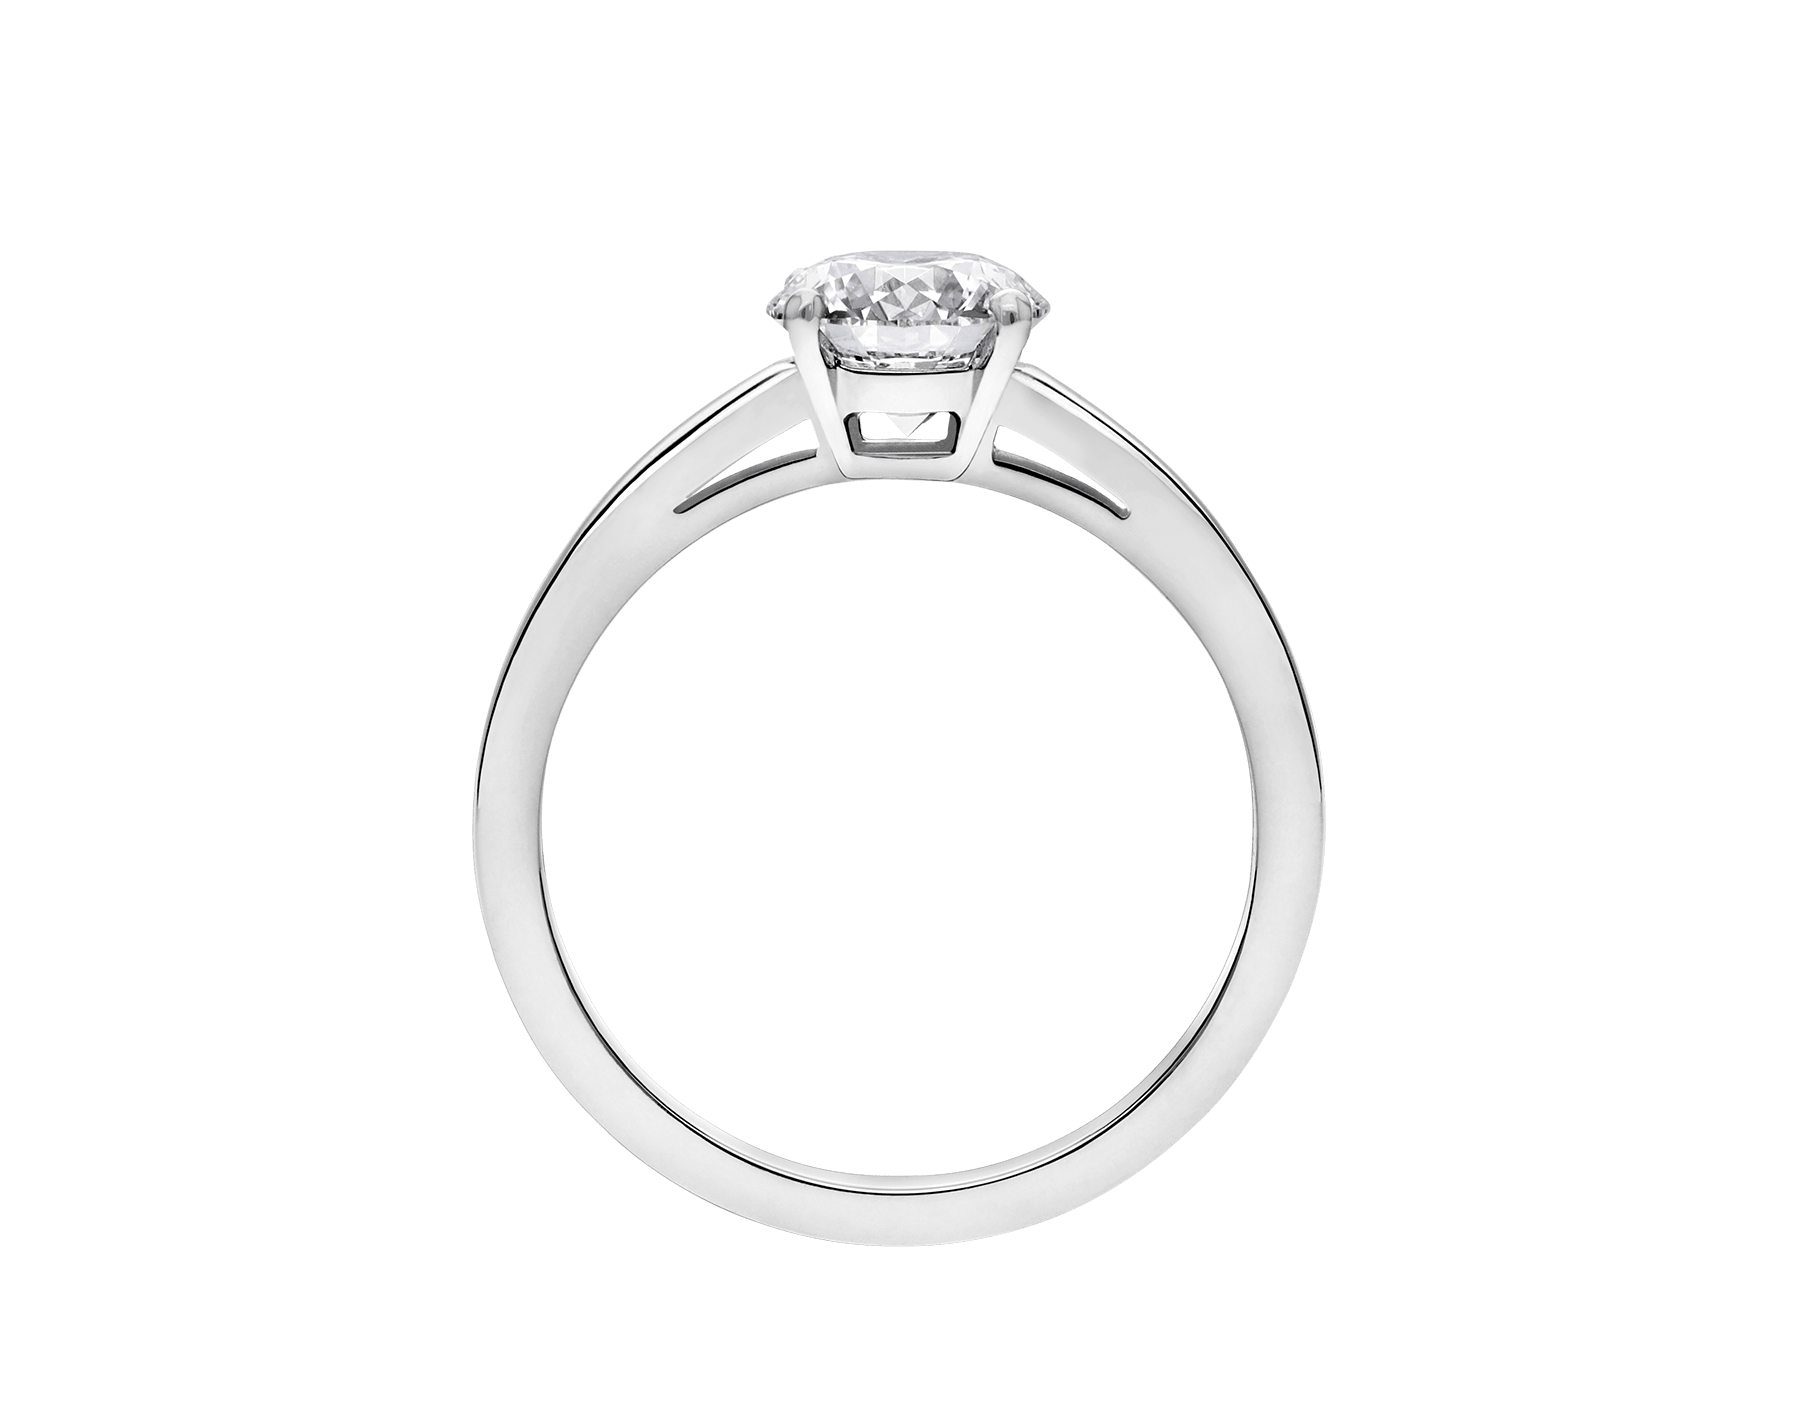 Griffe solitaire ring in platinum with round brilliant cut diamond AN201215 image 4